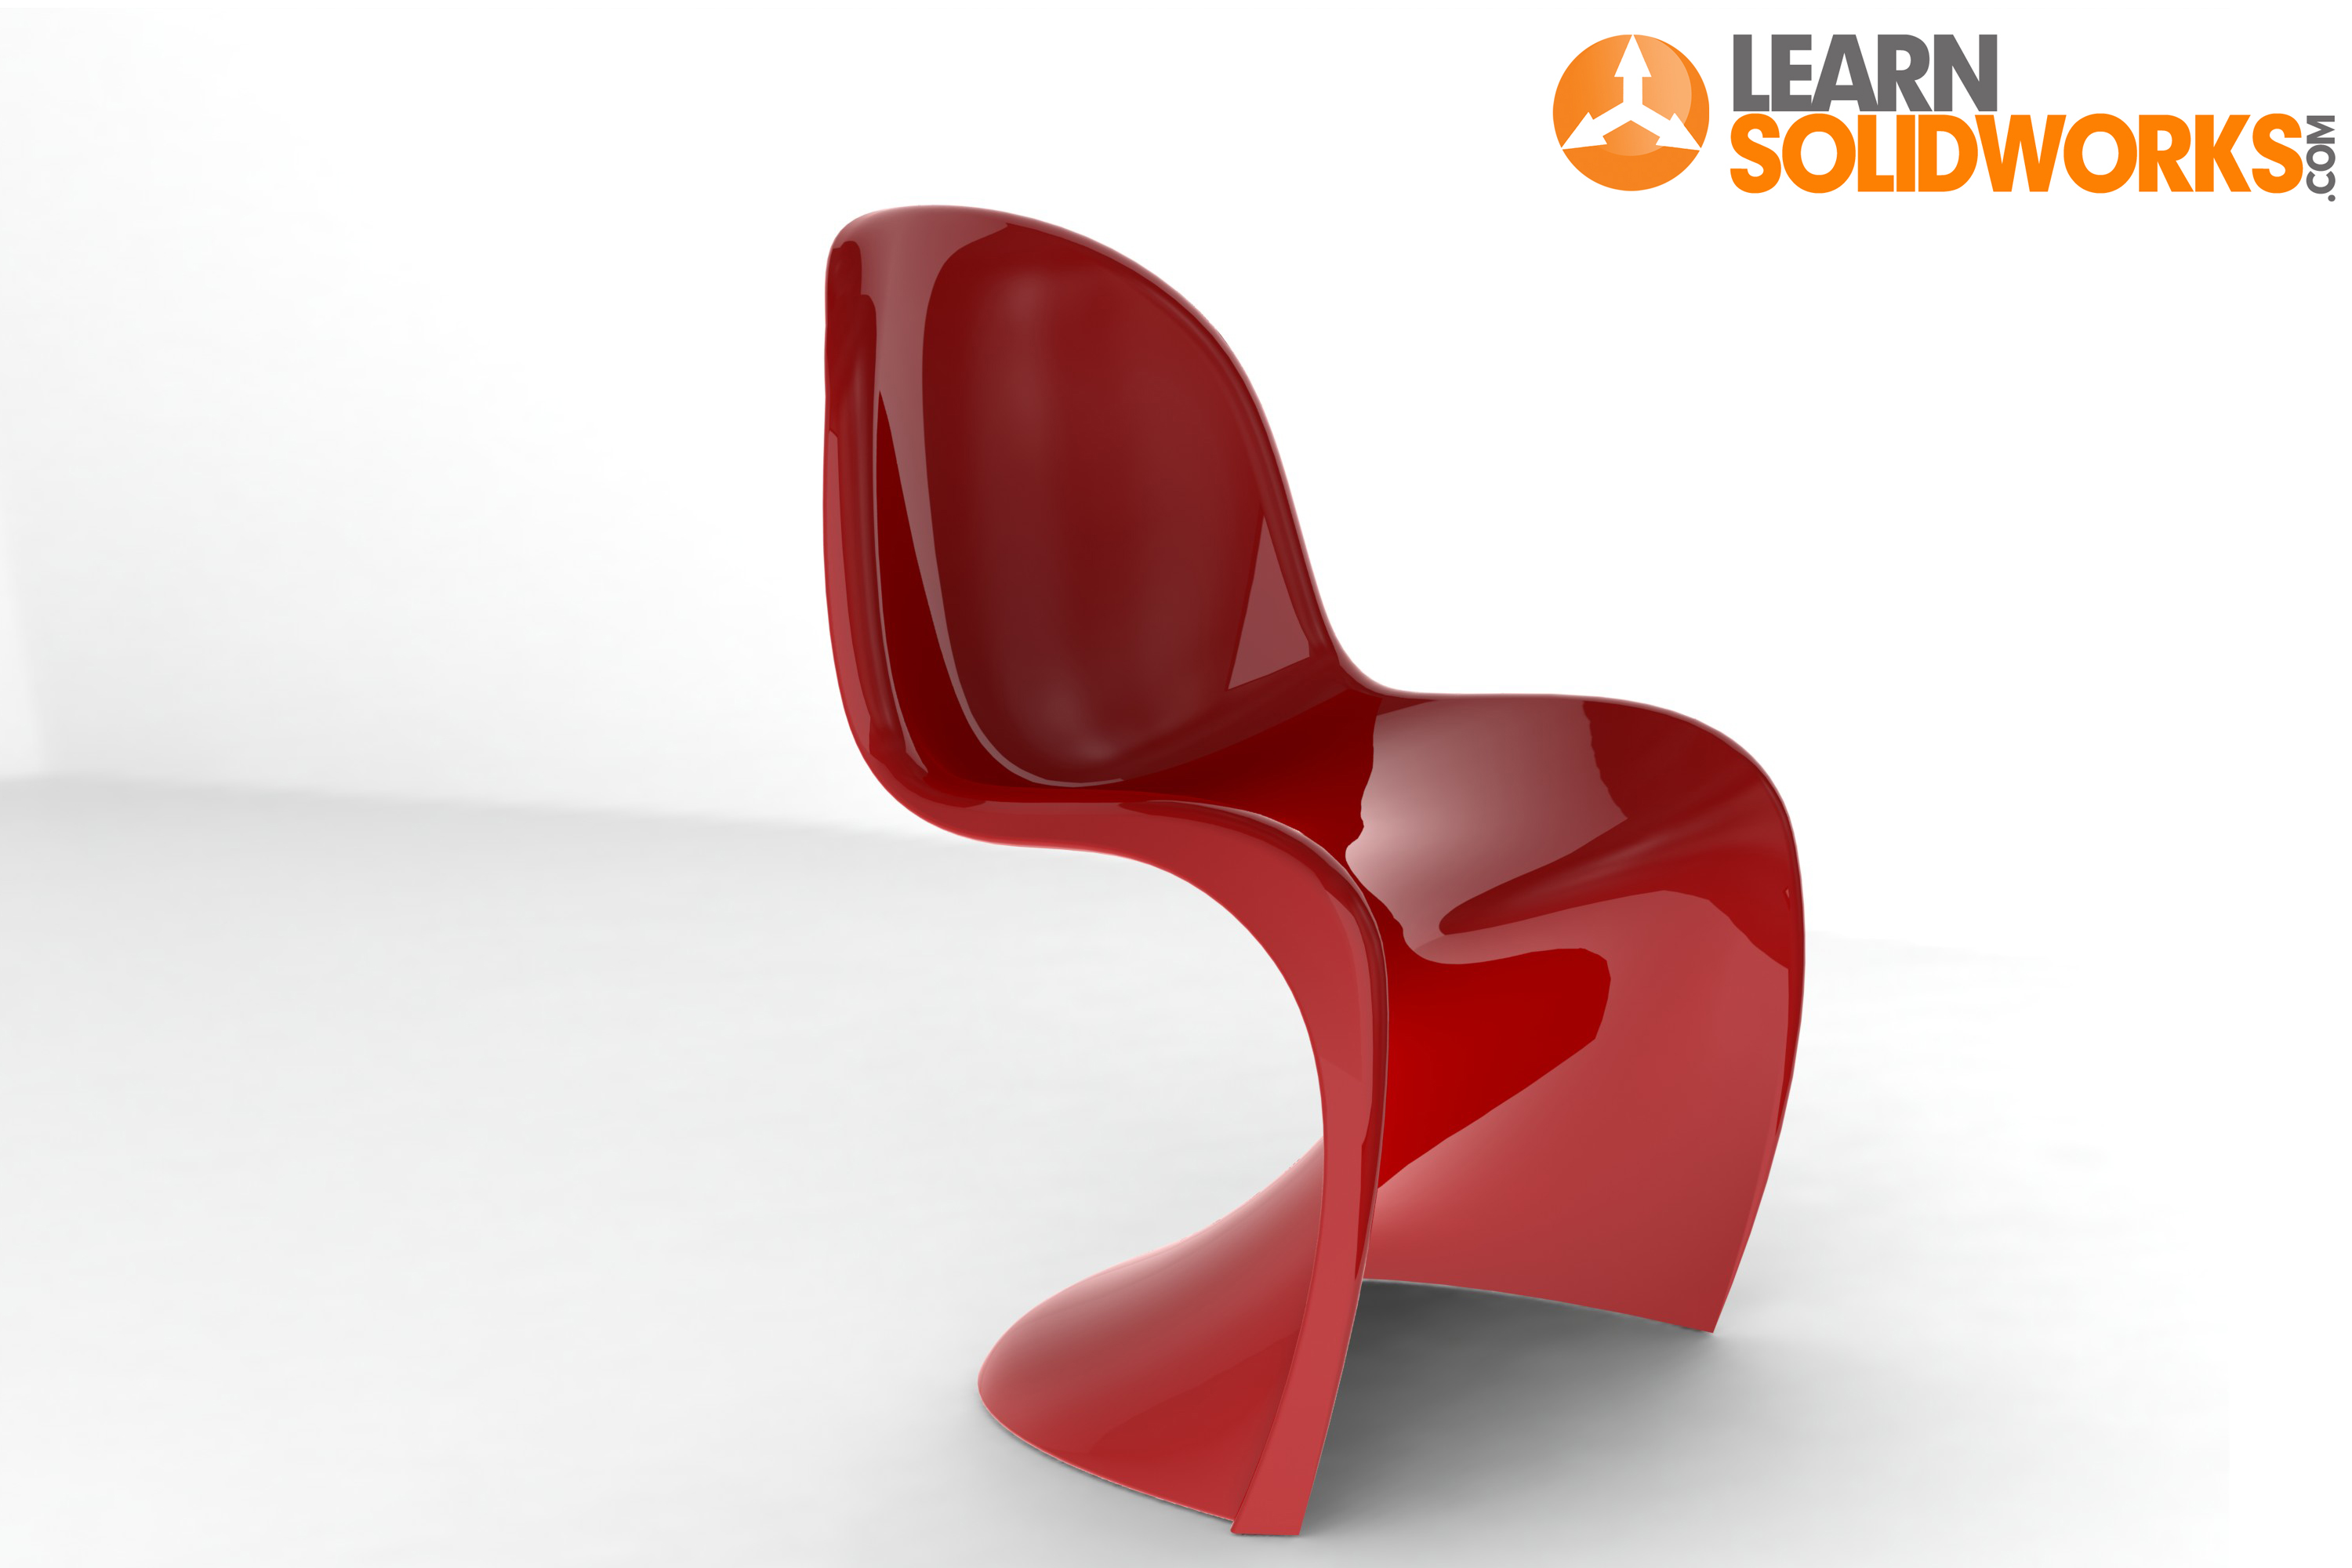 SolidWorks Tutorials: From SolidWorks Student to